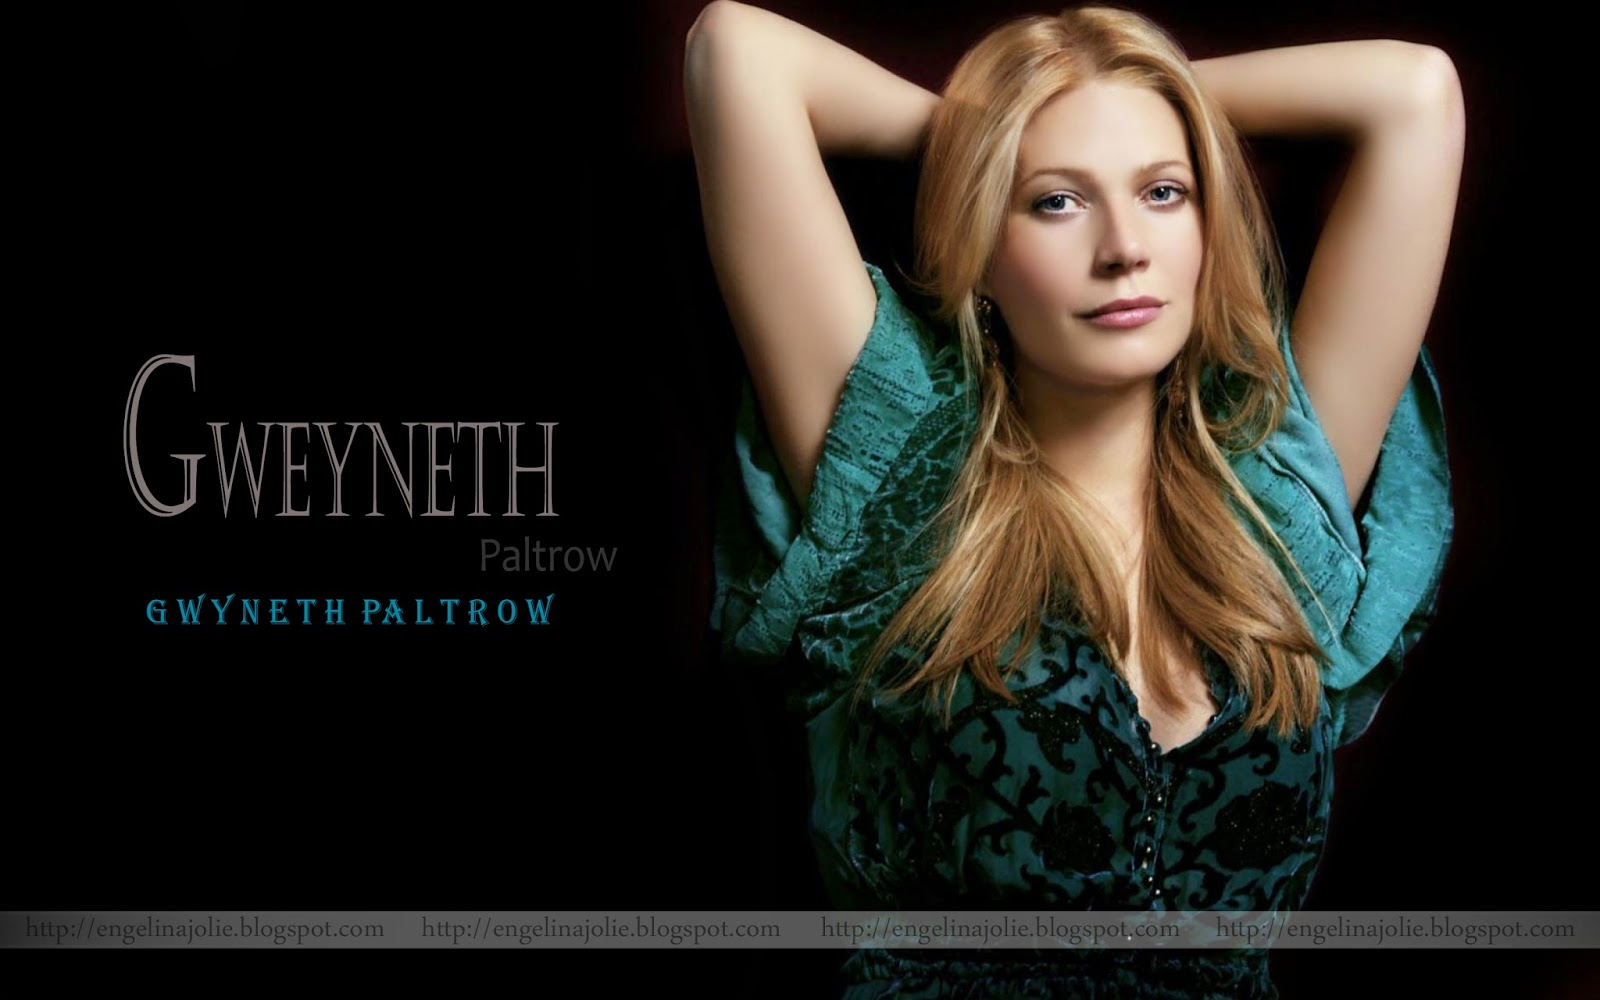 Angelina Jolie Gwyneth Paltrow Hot Pics  Wallpapers-5887